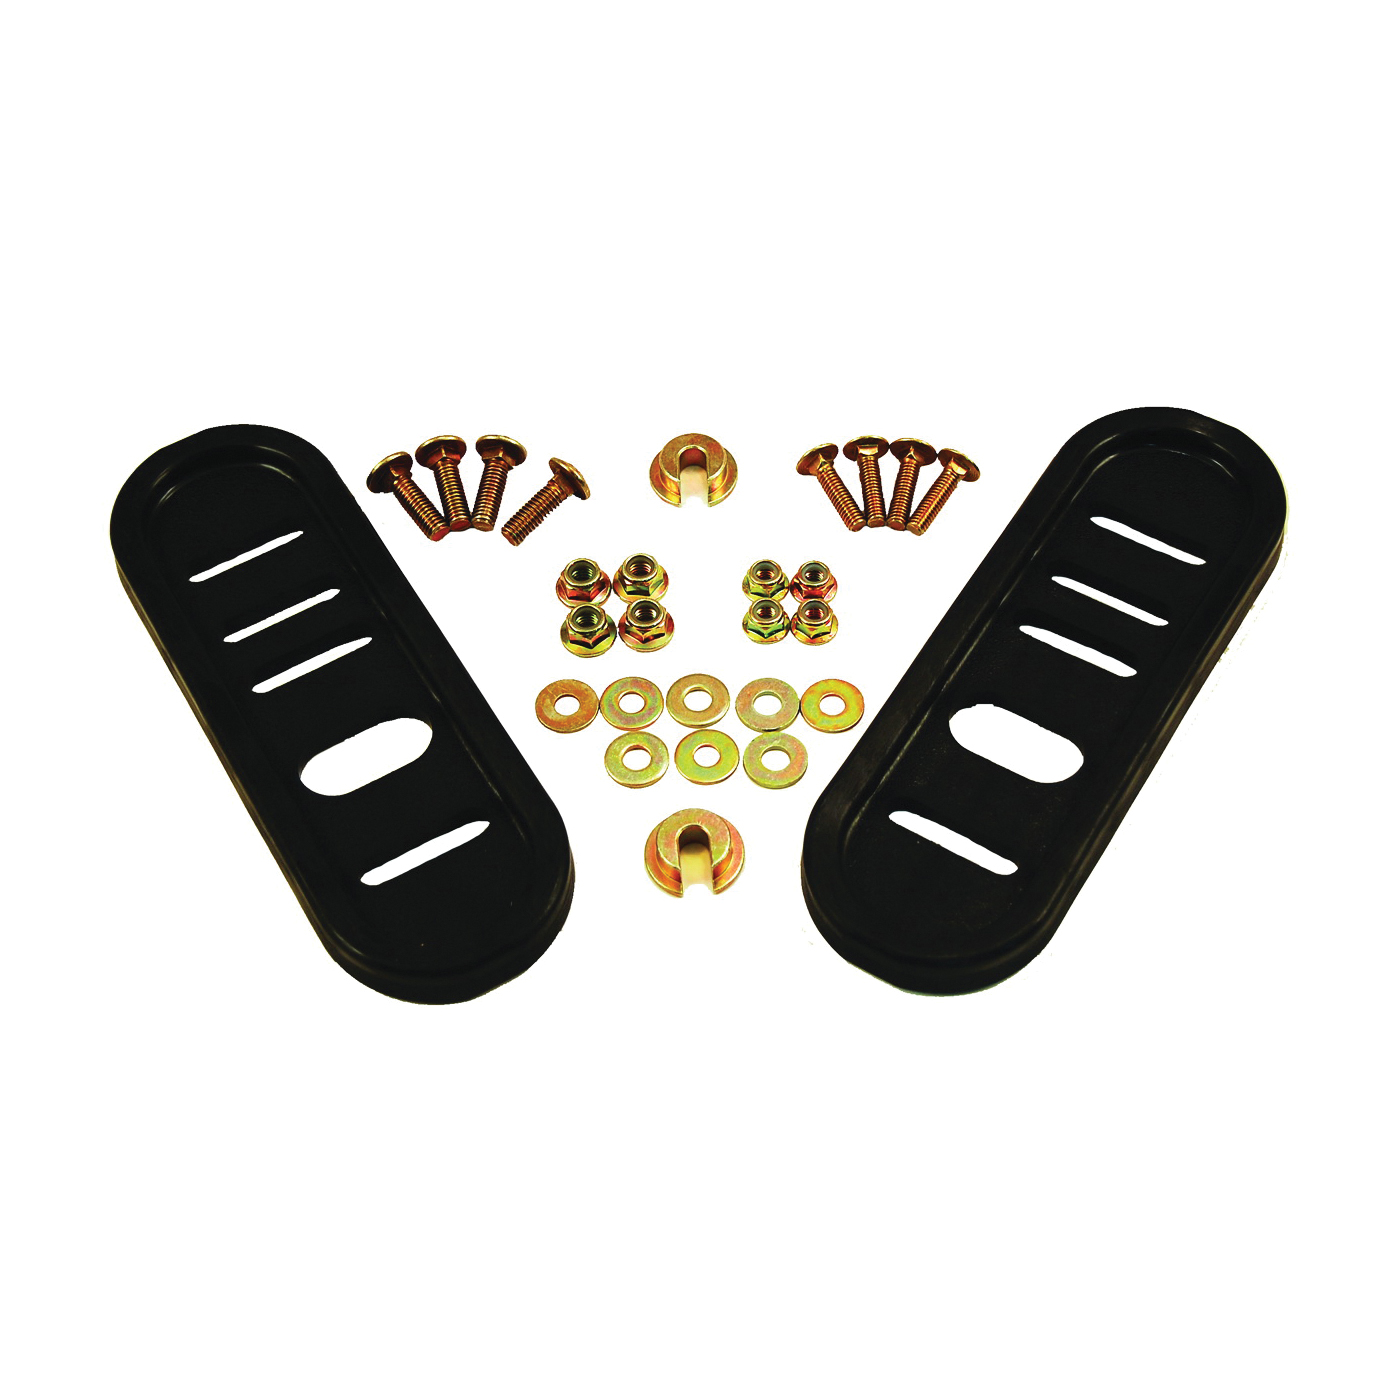 Picture of ARNOLD 490-241-0010 Slide Shoe Kit, Universal, Poly, For: Most Two-Stage Snow Throwers